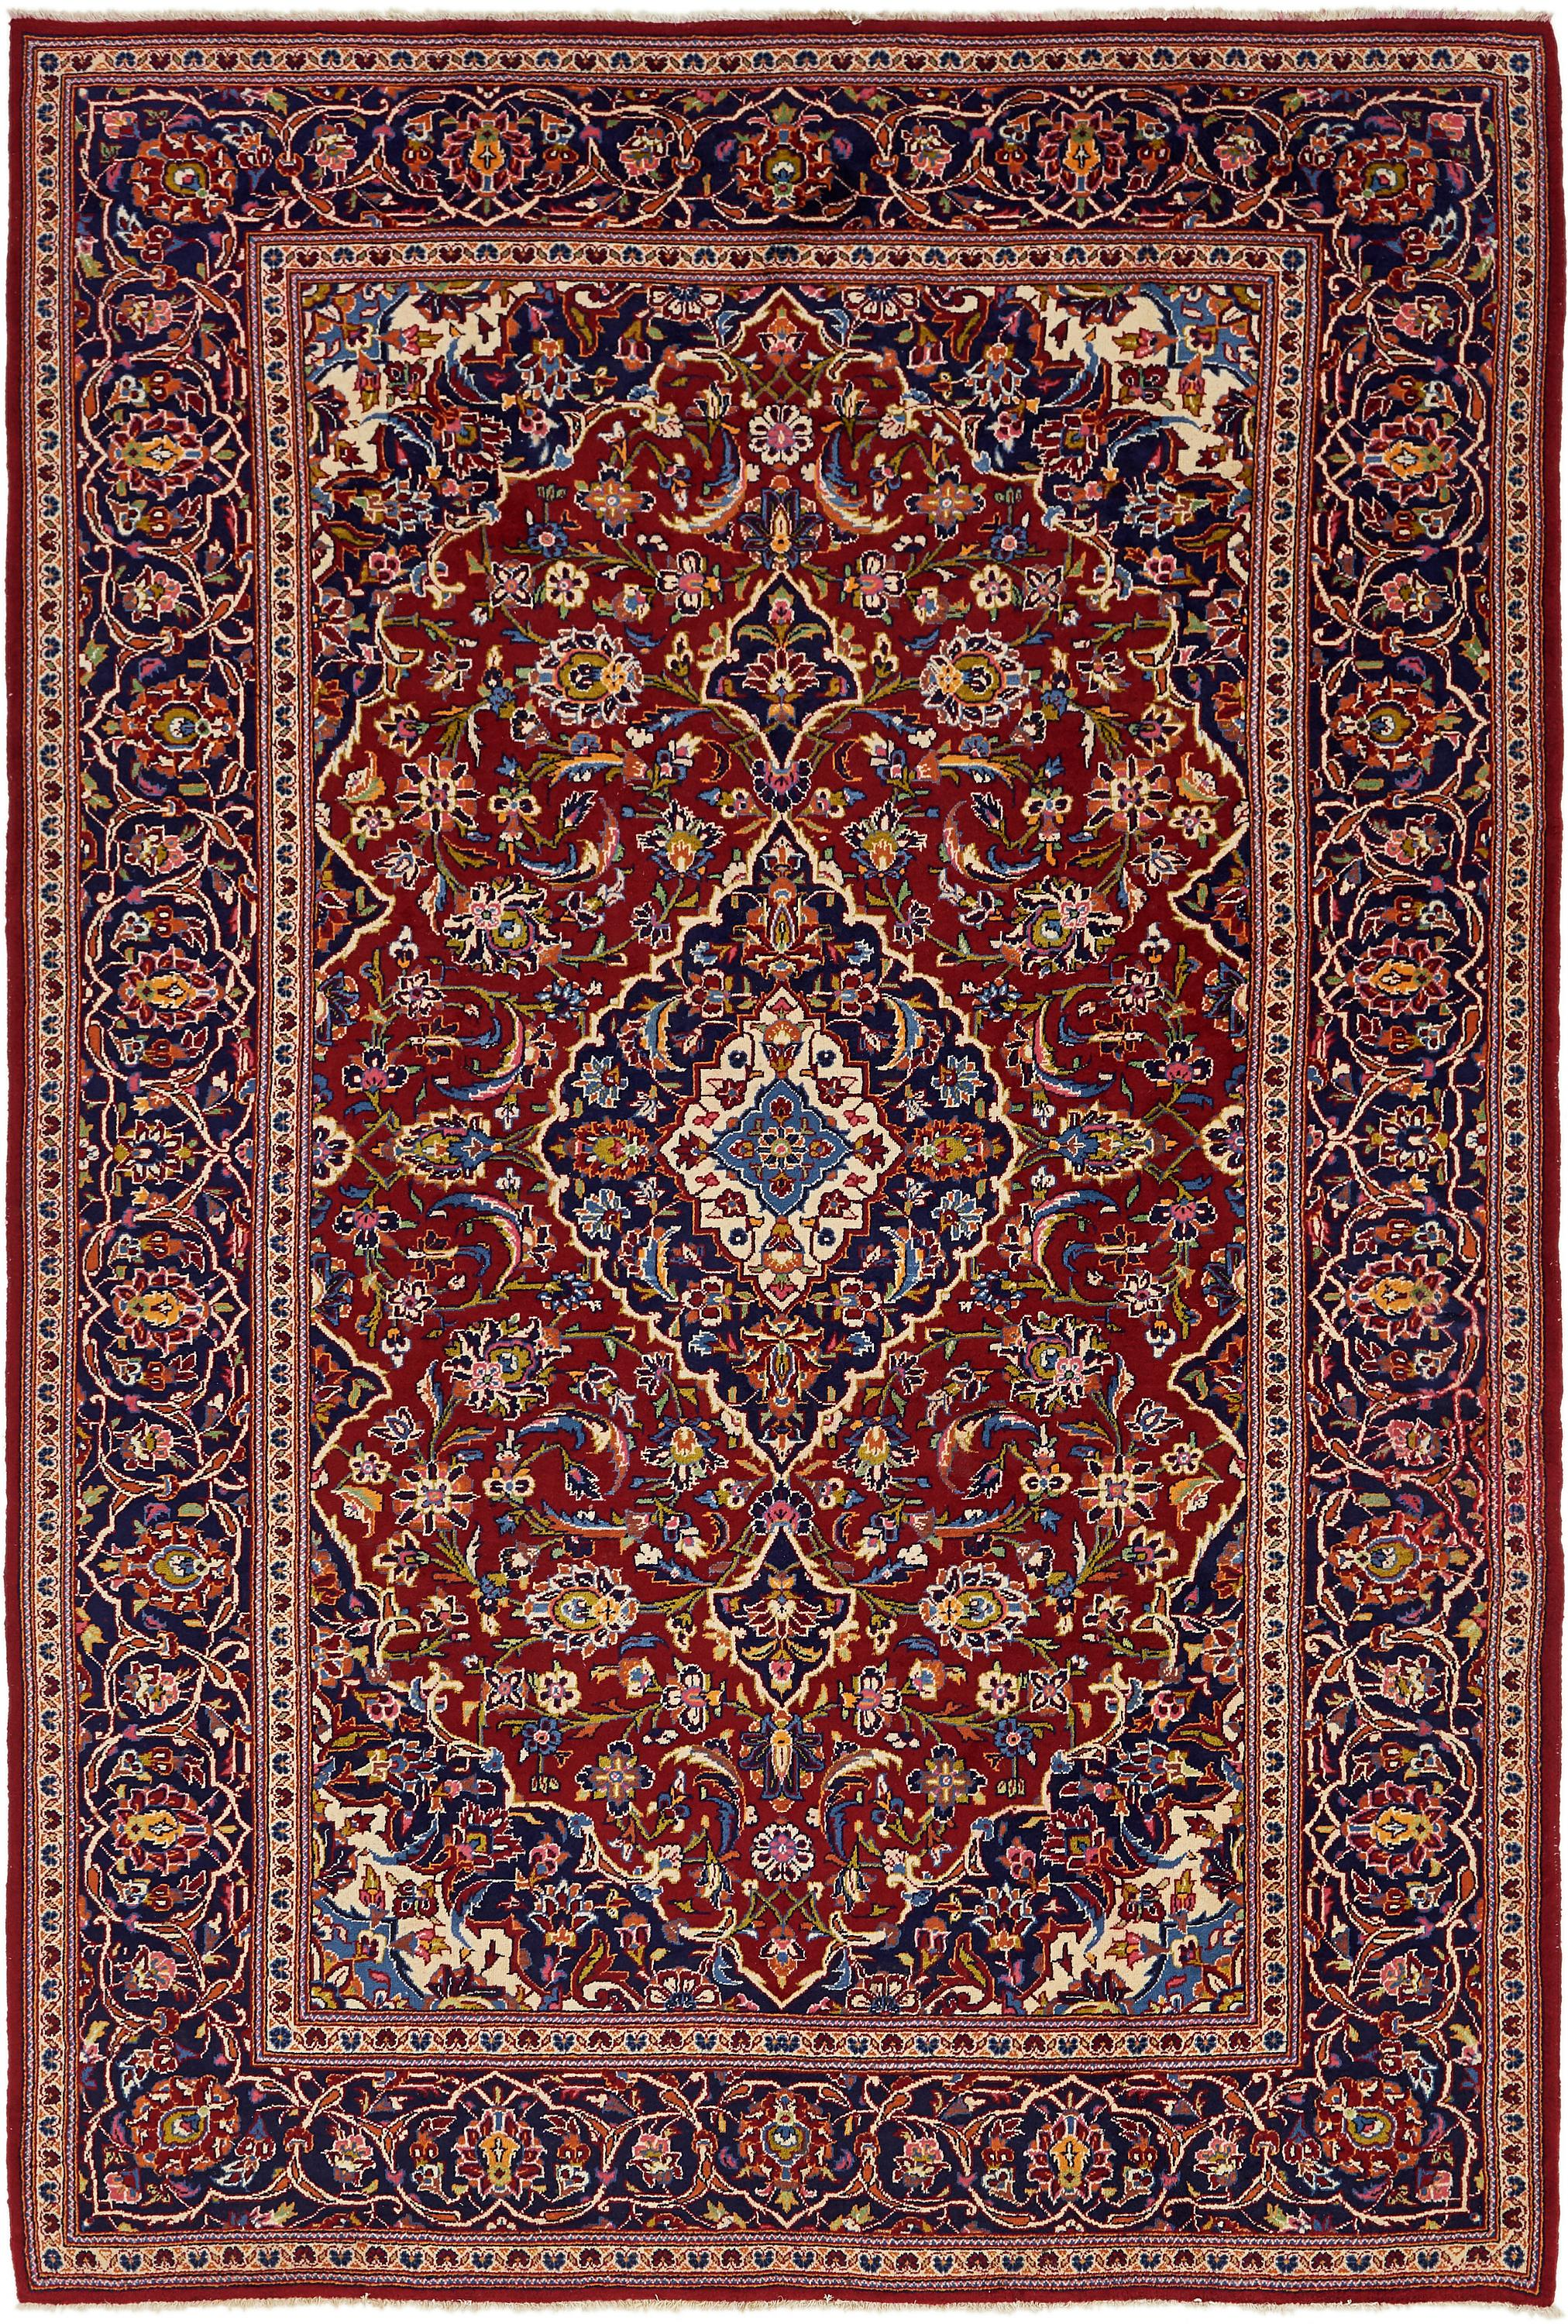 Red 8 X 12 Kashan Persian Rug Handknotted Com